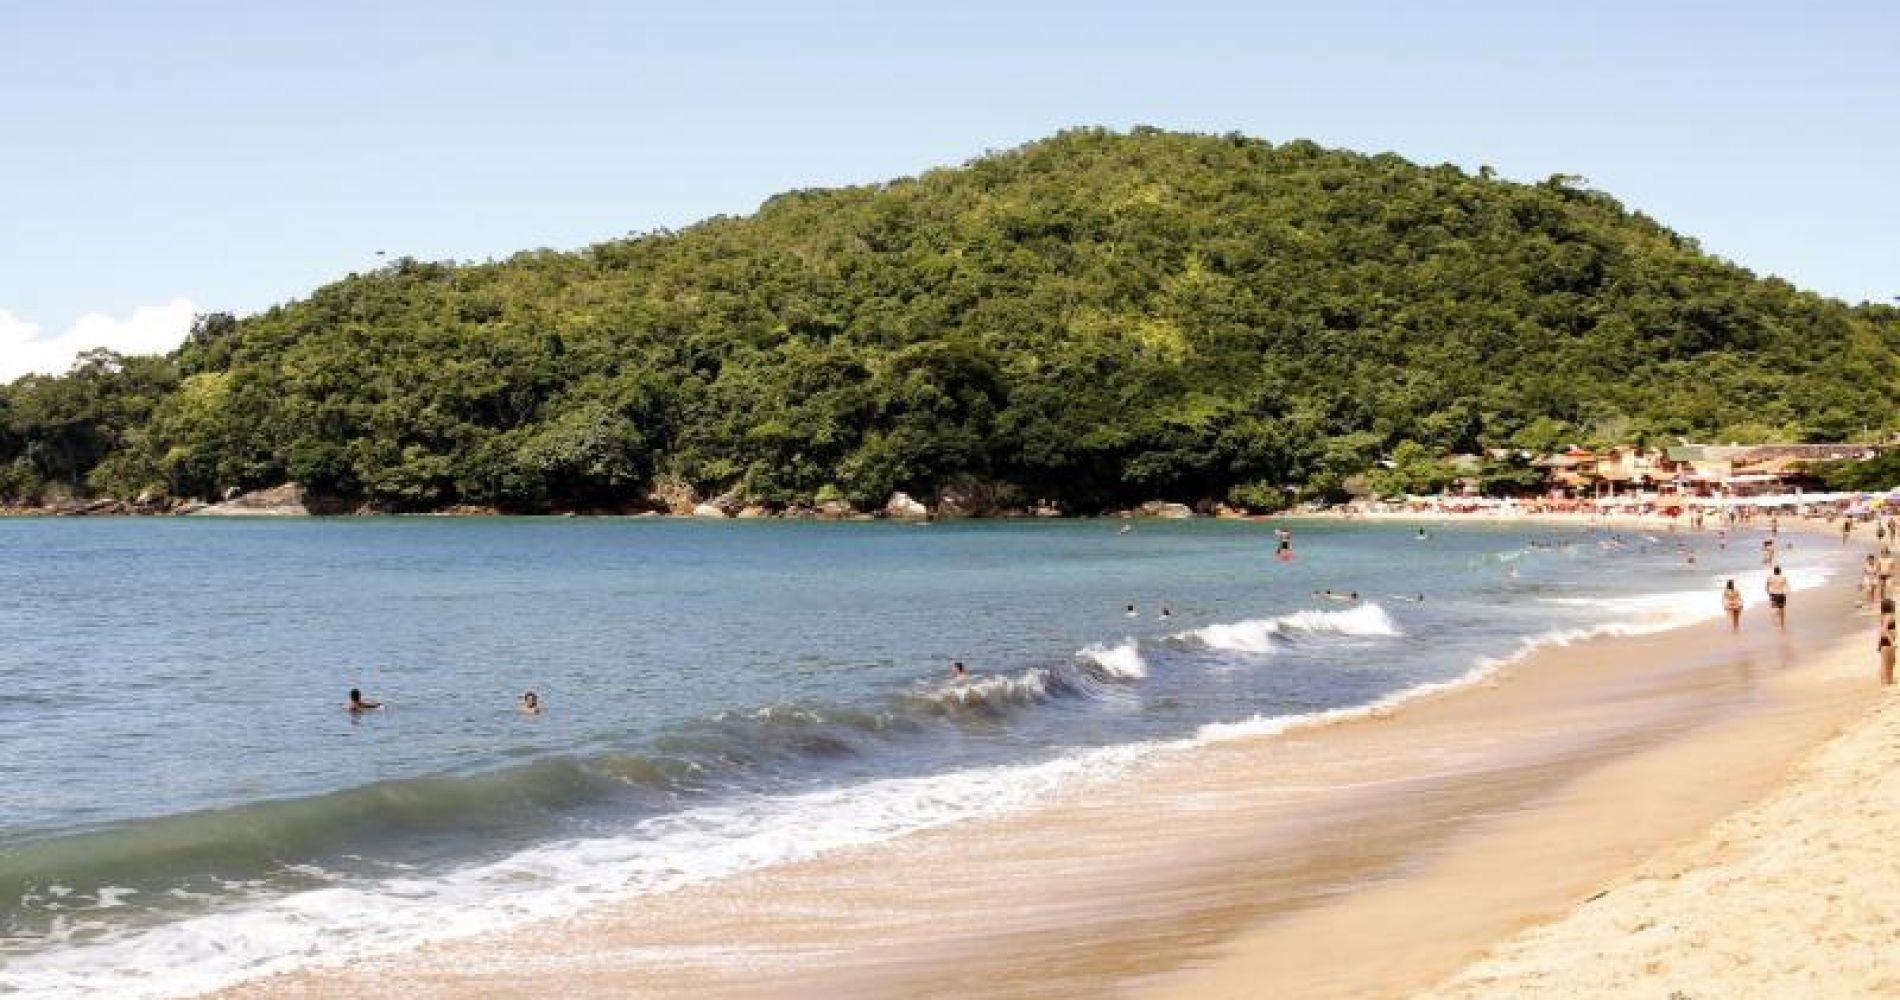 Fishing Village Beach Trek & Snorkeling Adventure from Paraty